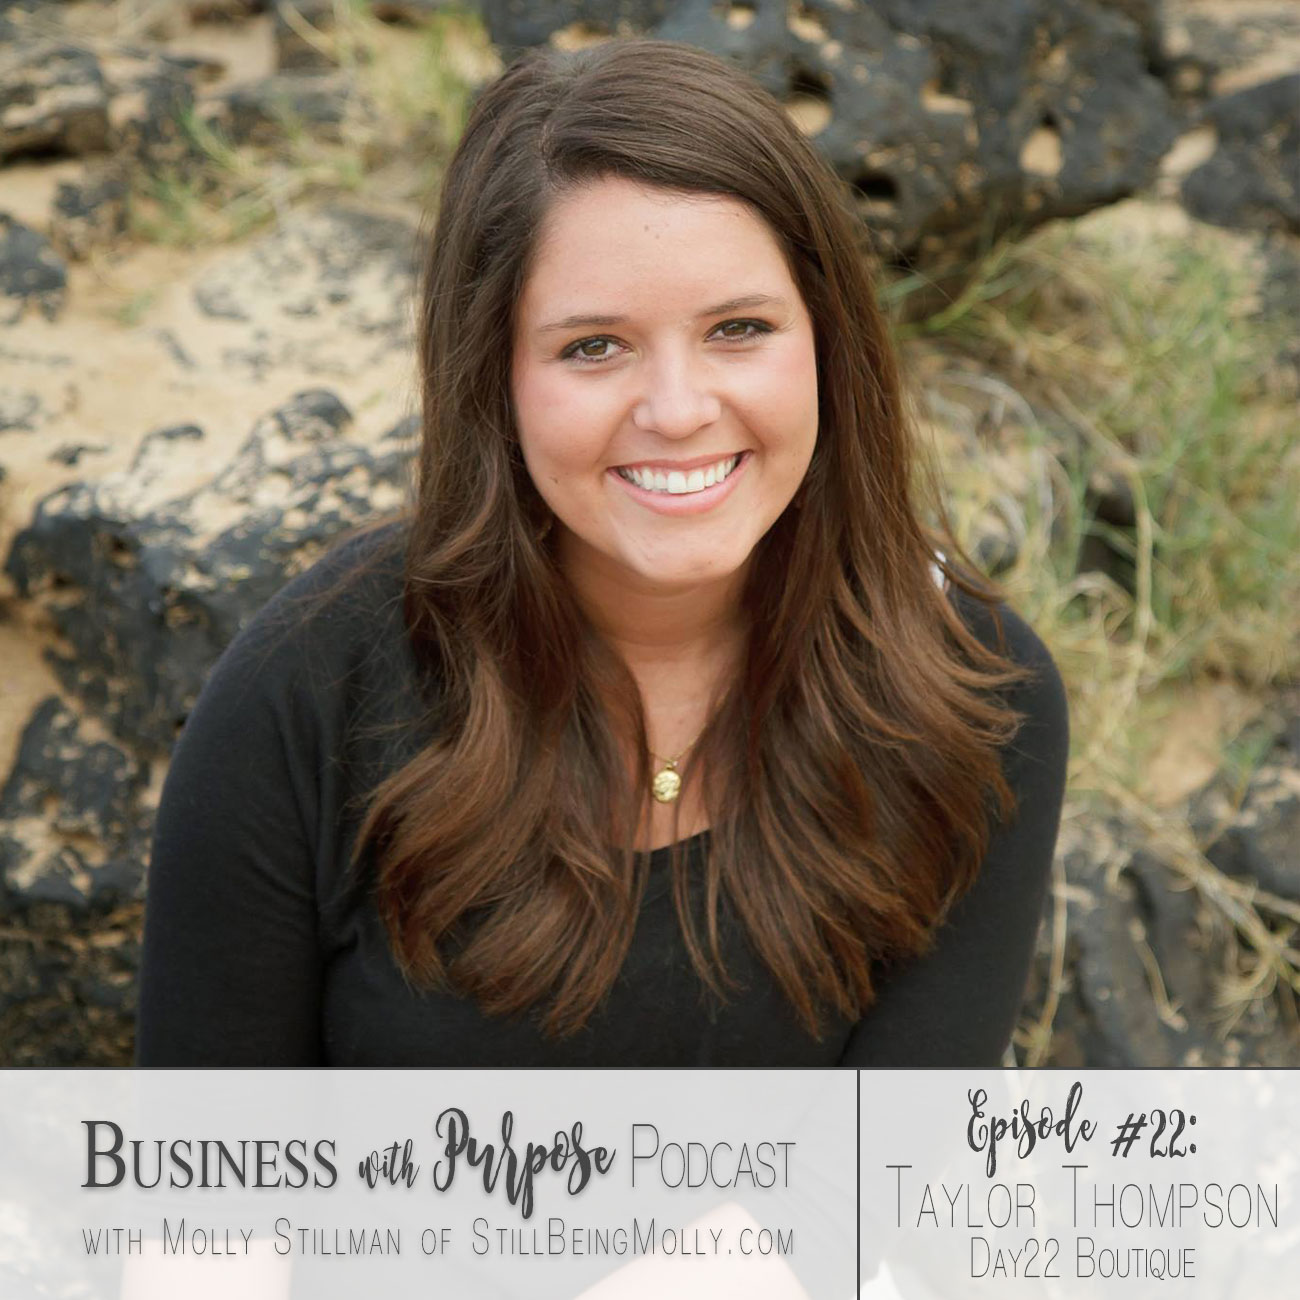 EP. 22: Taylor Thompson - Day22 Boutique + A Kind Journey